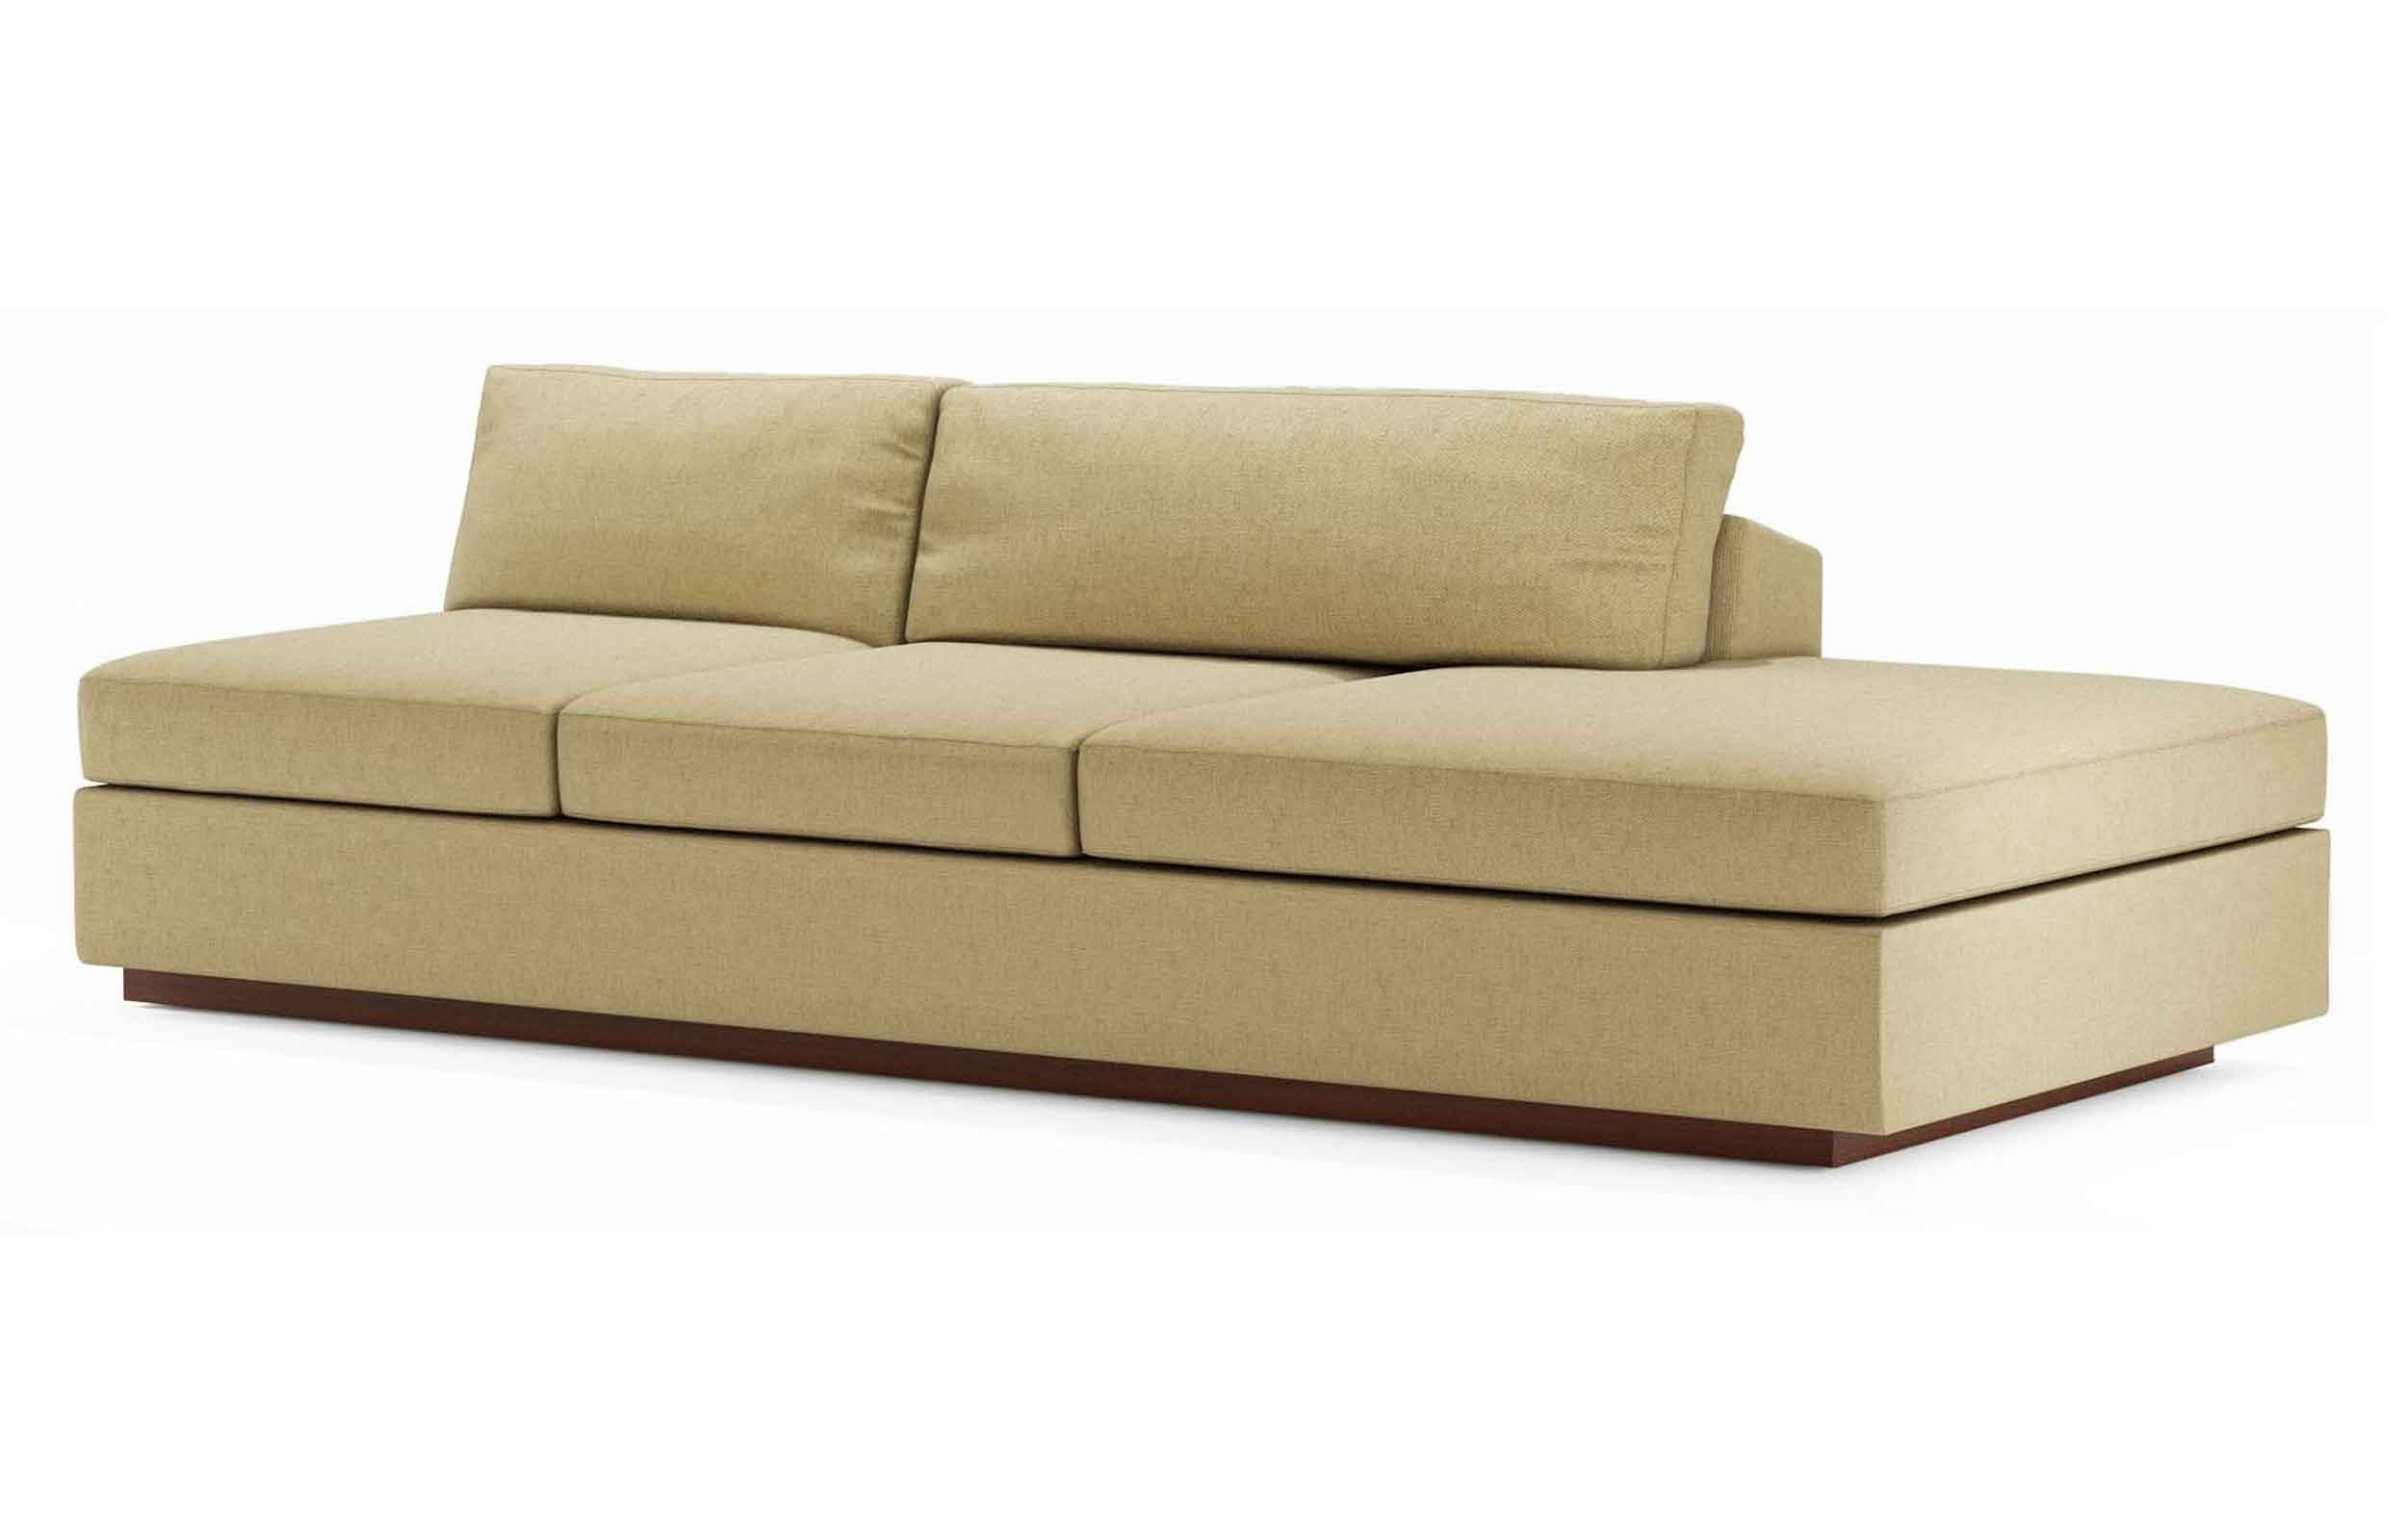 Famous Furniture Home: Armless Sectional Sofa Armless Sofa Spine Armless Pertaining To Small Armless Sofas (View 6 of 15)